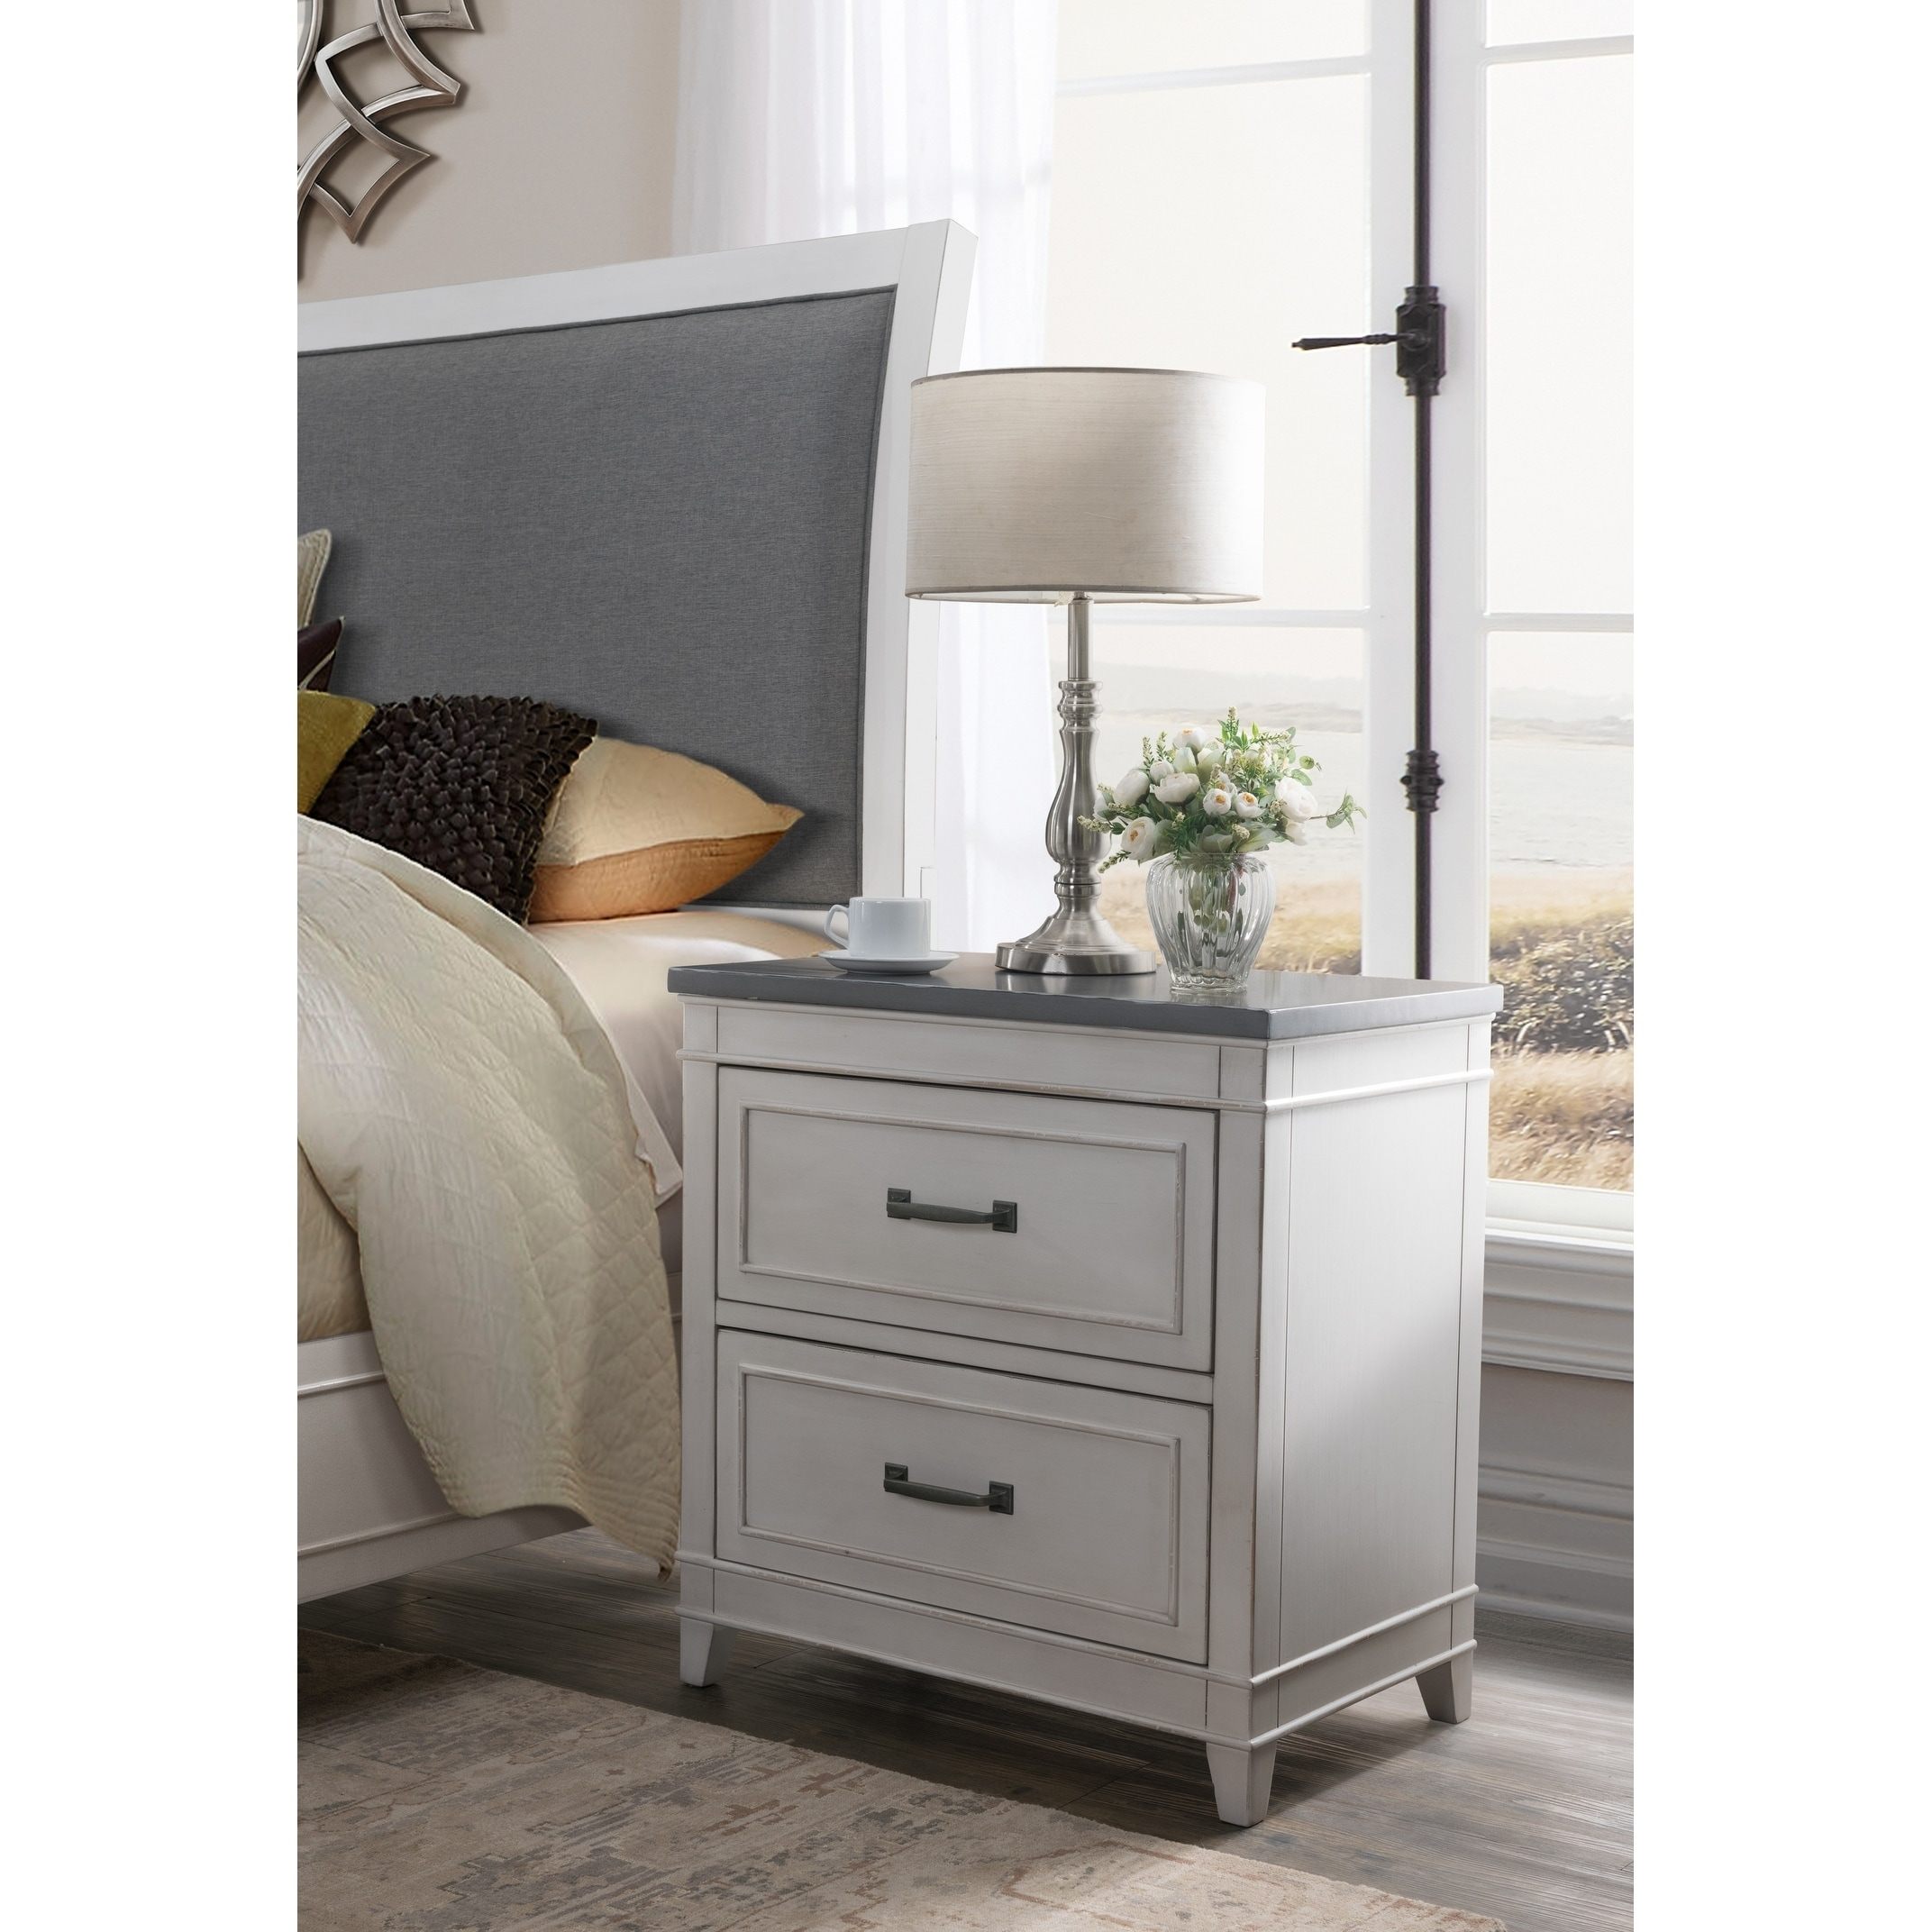 The Gray Barn Happy Horse White And Grey 2 Drawer Nightstand Overstock 28714791